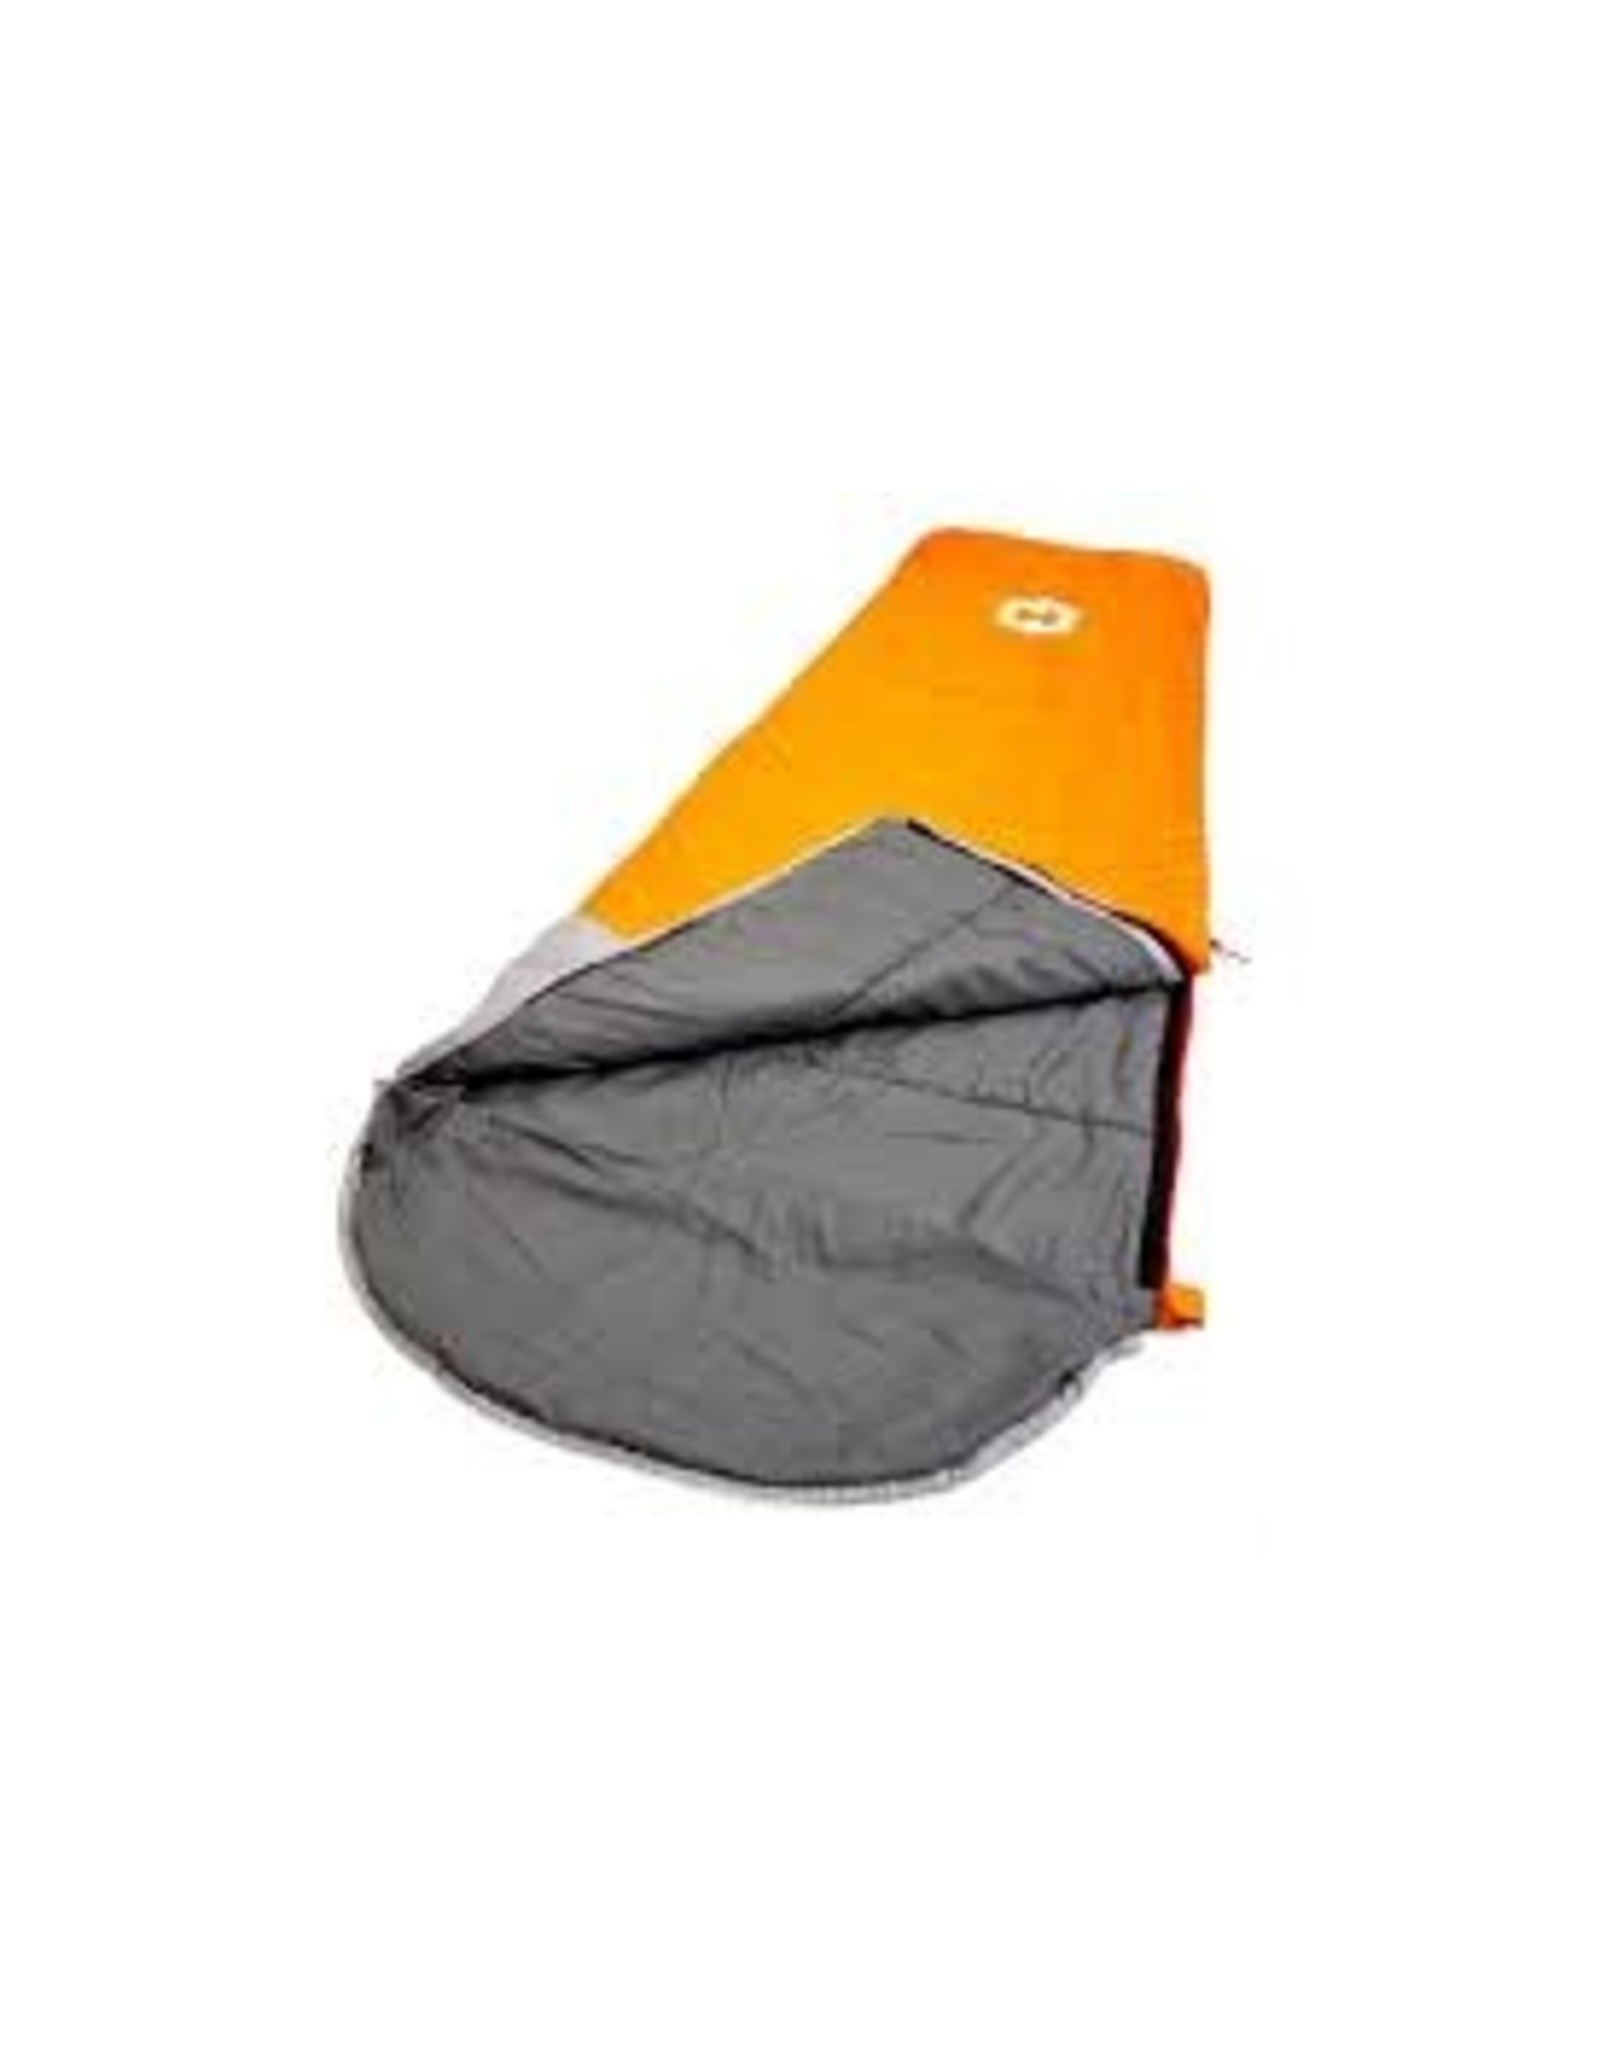 HOTCORE HOTCORE T-100  Sleeping Bag